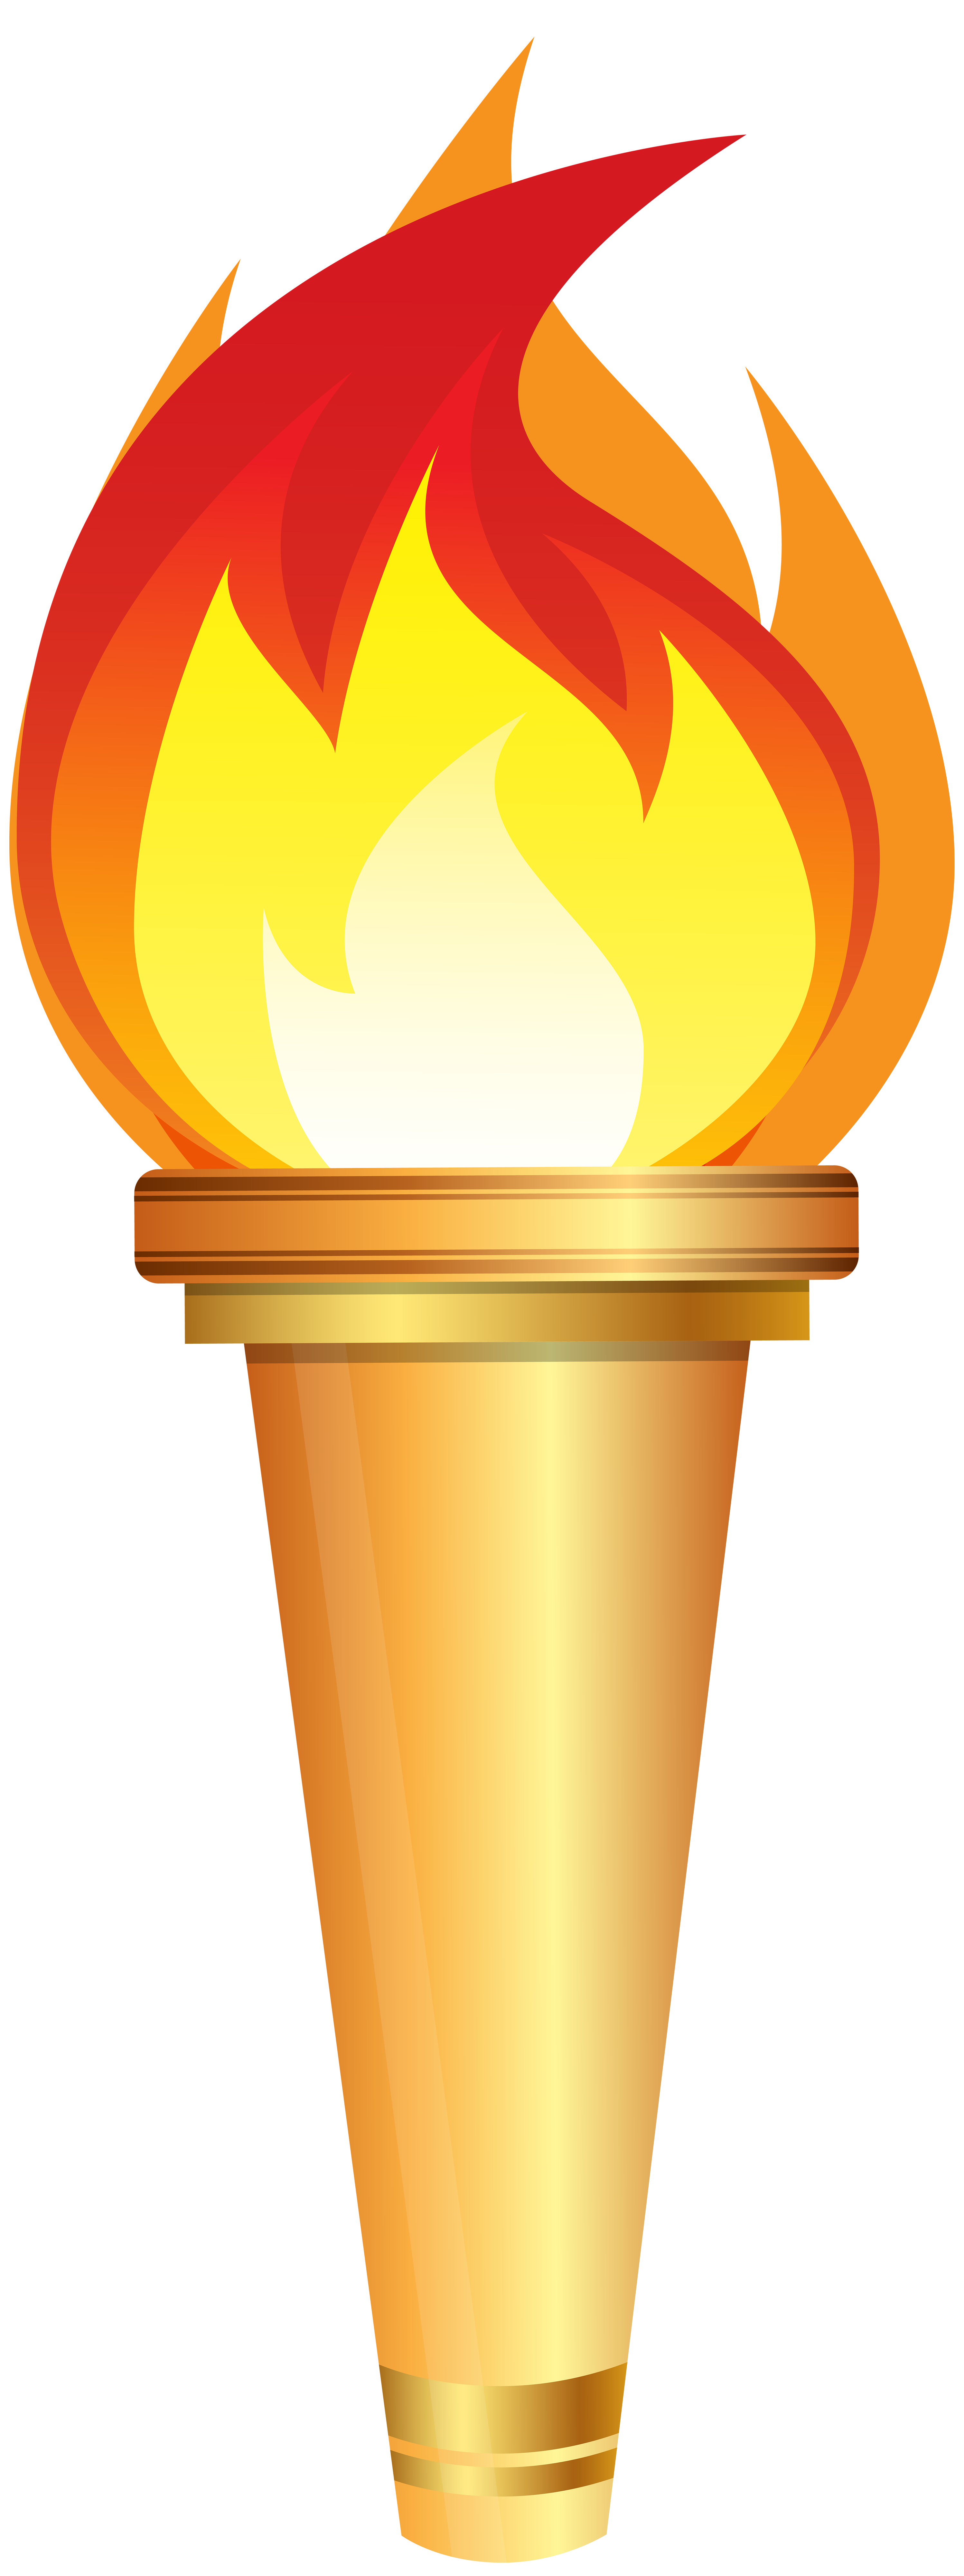 Olympic torch clipart.